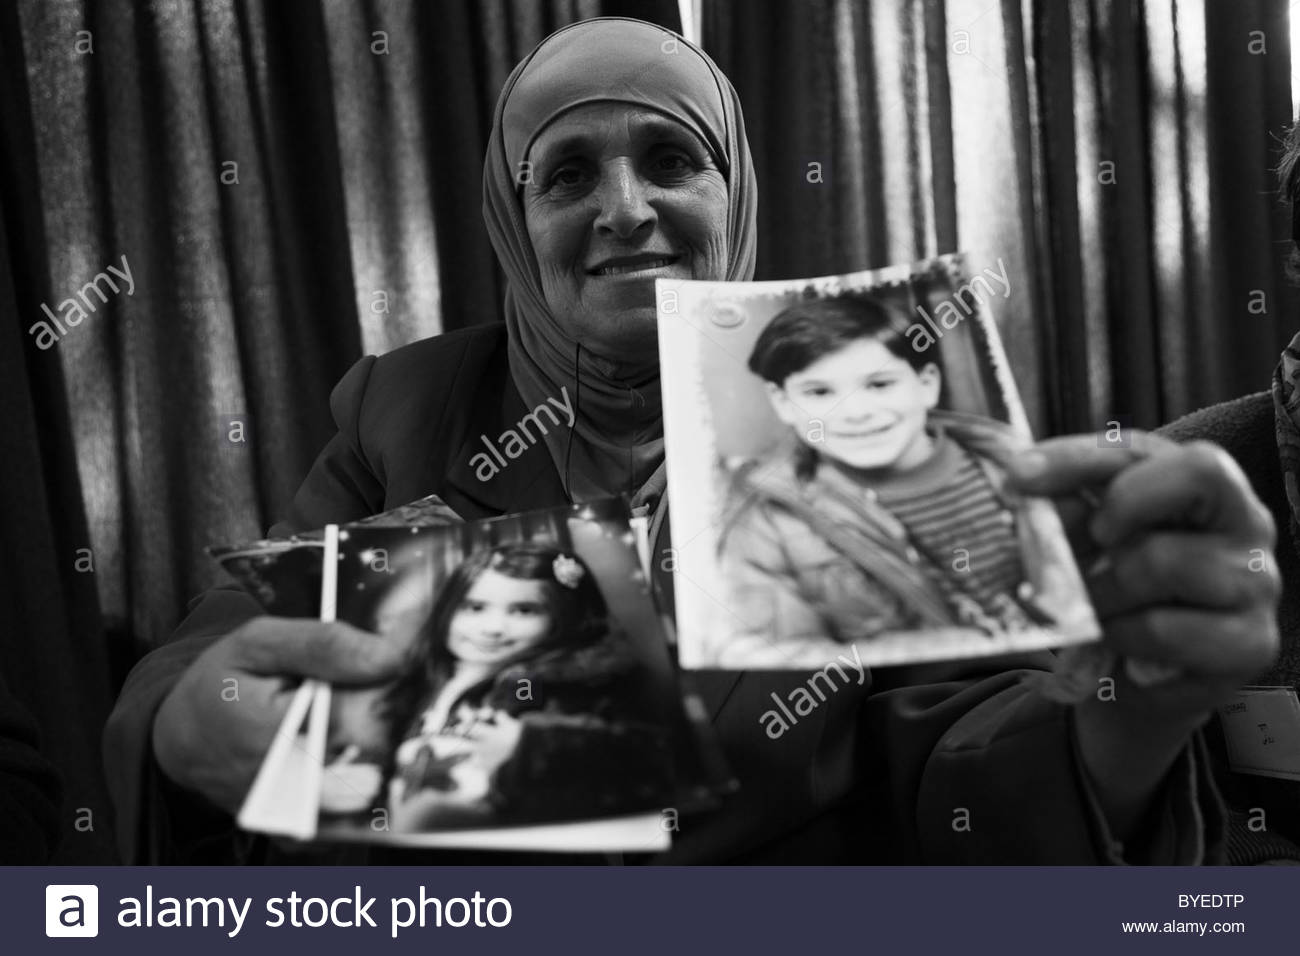 A Palestinian woman holding family photographs in the West bank Israel - Stock Image